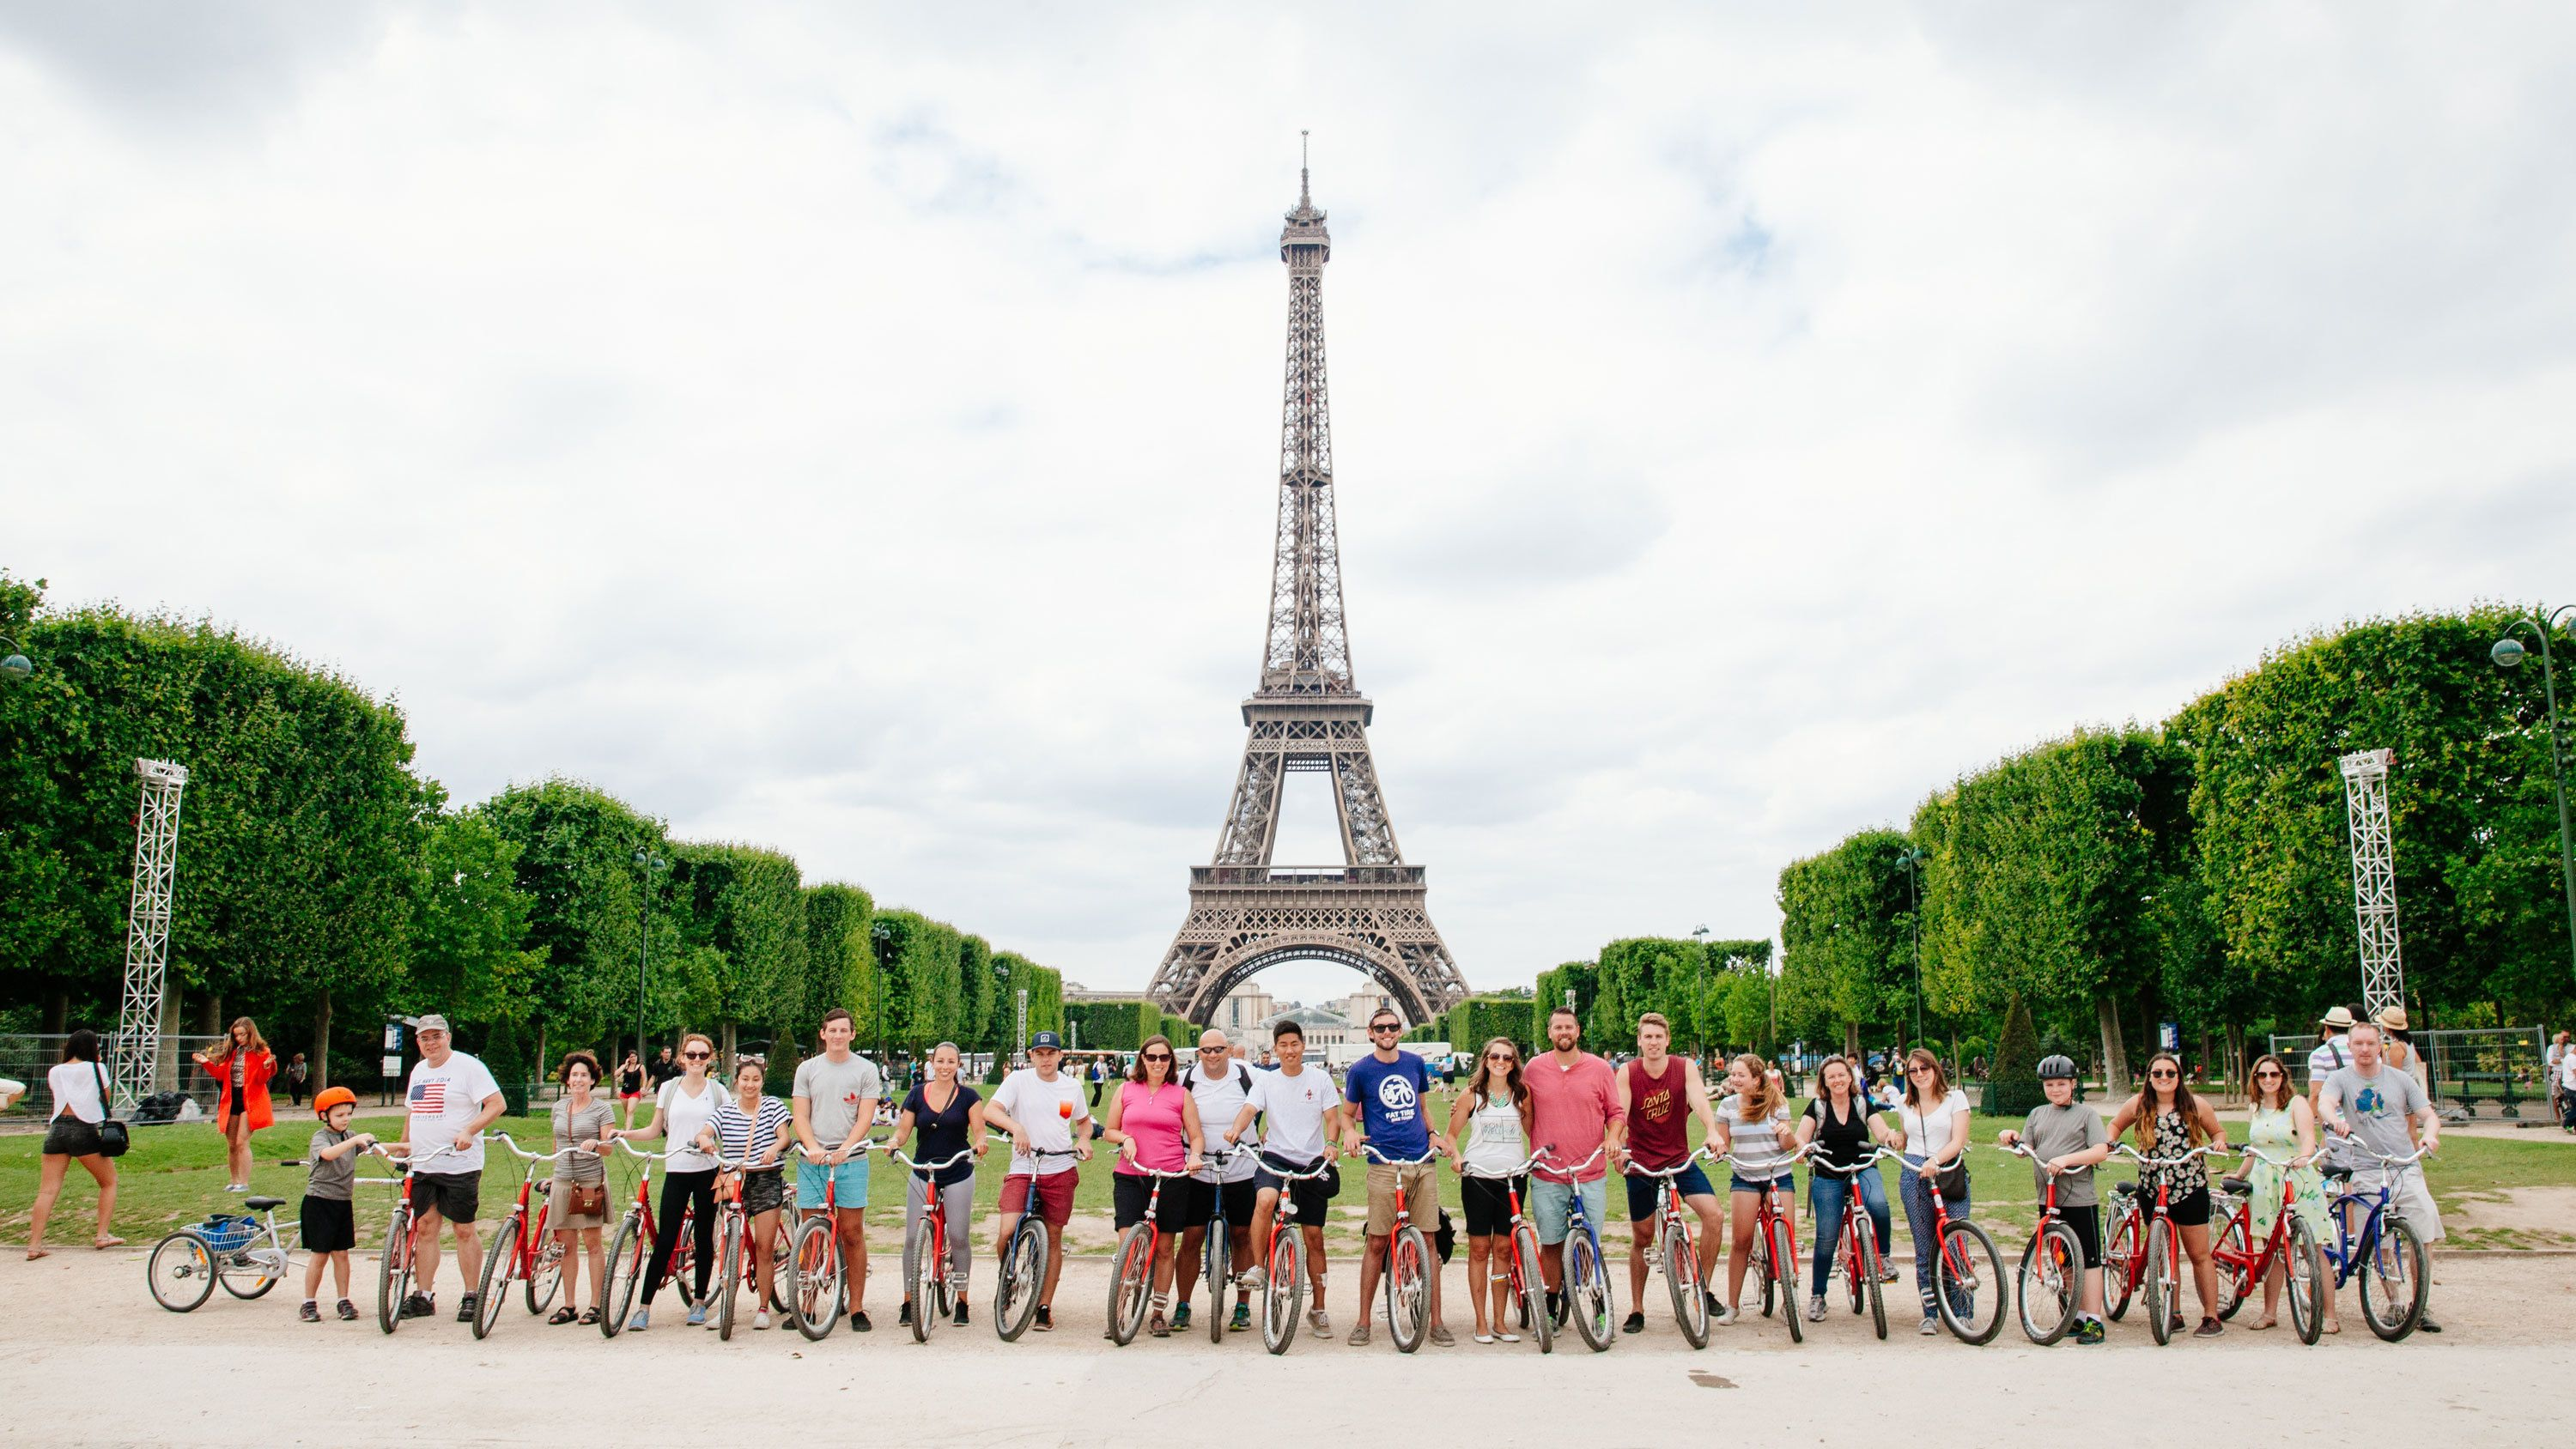 Bicyclists infront of the Eiffel tower